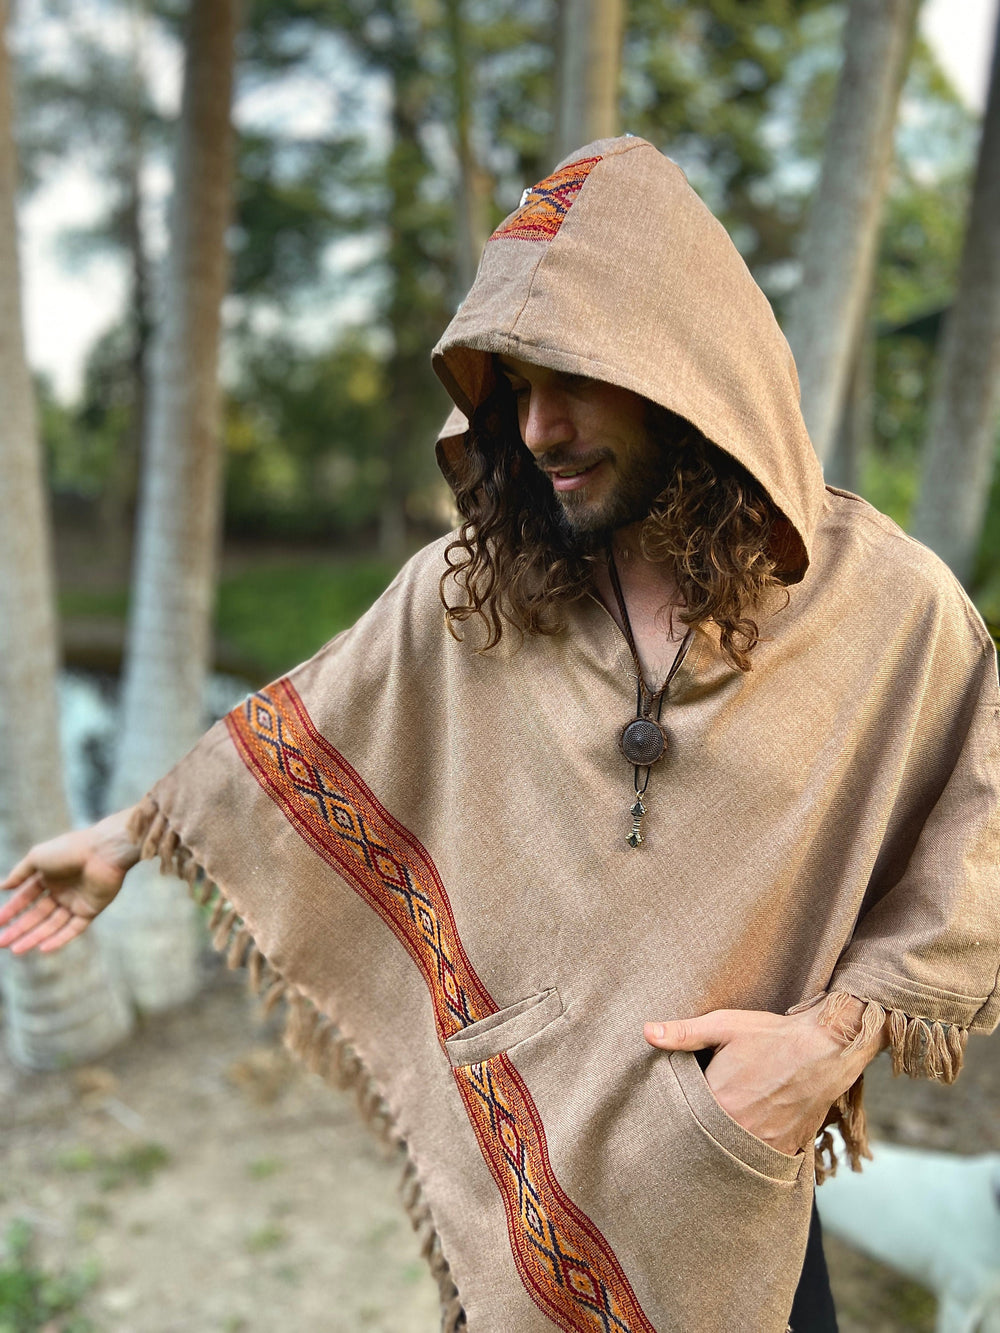 UPEKKHA Hooded Poncho with Hood Chai light Brown Handwoven Pockets Wool Cashmere Tibetan Winter Zen Embroidery Boho Primitive Mexican AJJAYA